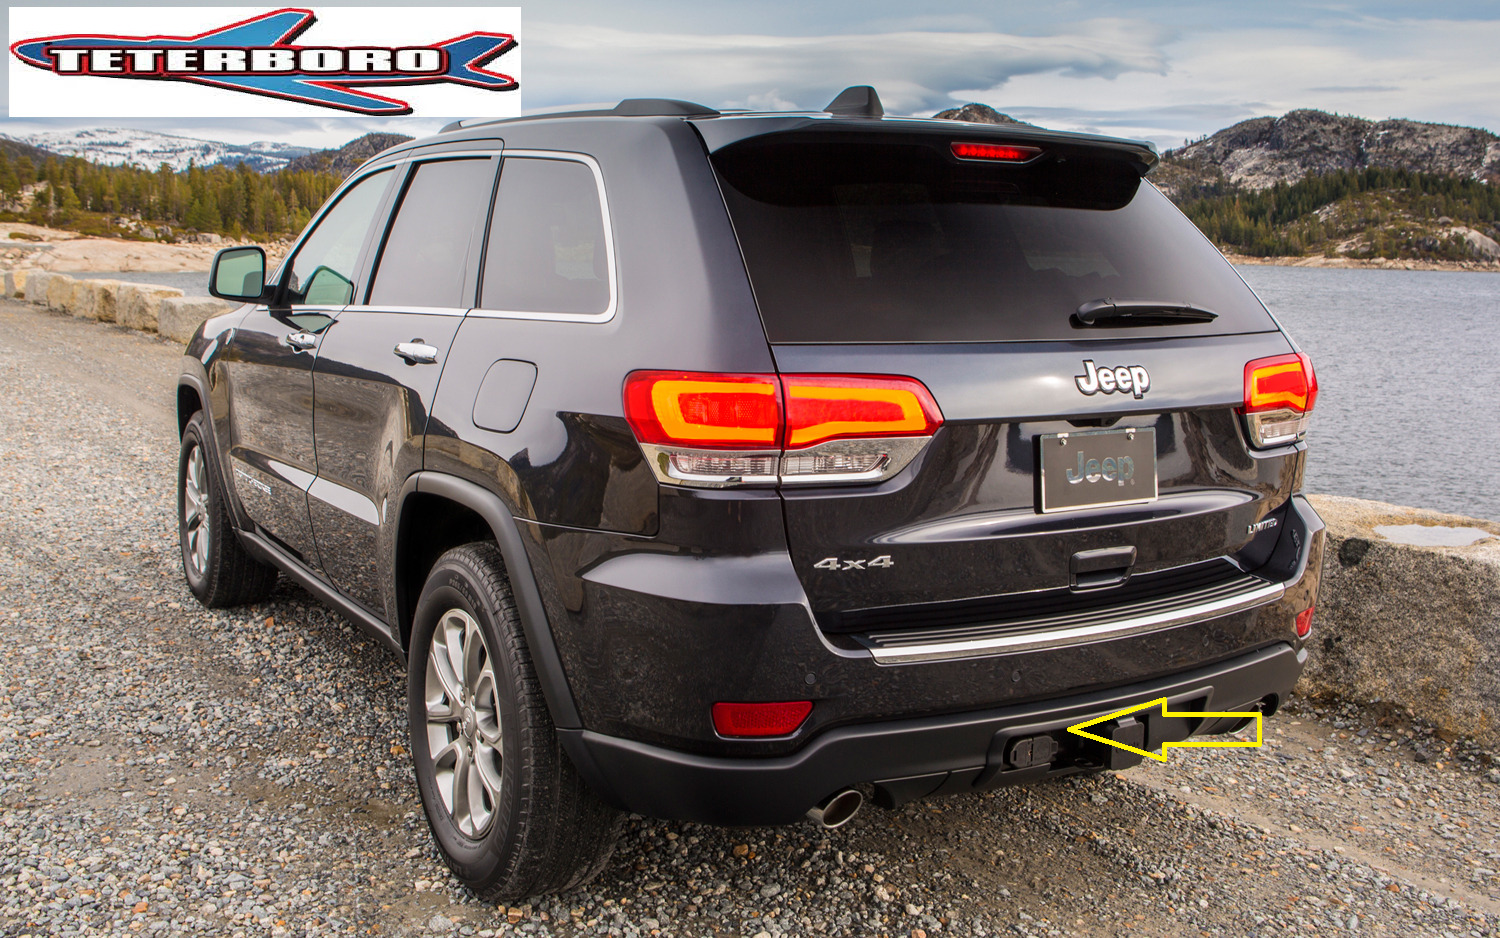 2011 2018 Jeep Grand Cherokee Mopar Class Iv Oem Trailer Hitch Towing Wire Harness Hook Up Connector 1 Of 7free Shipping See More